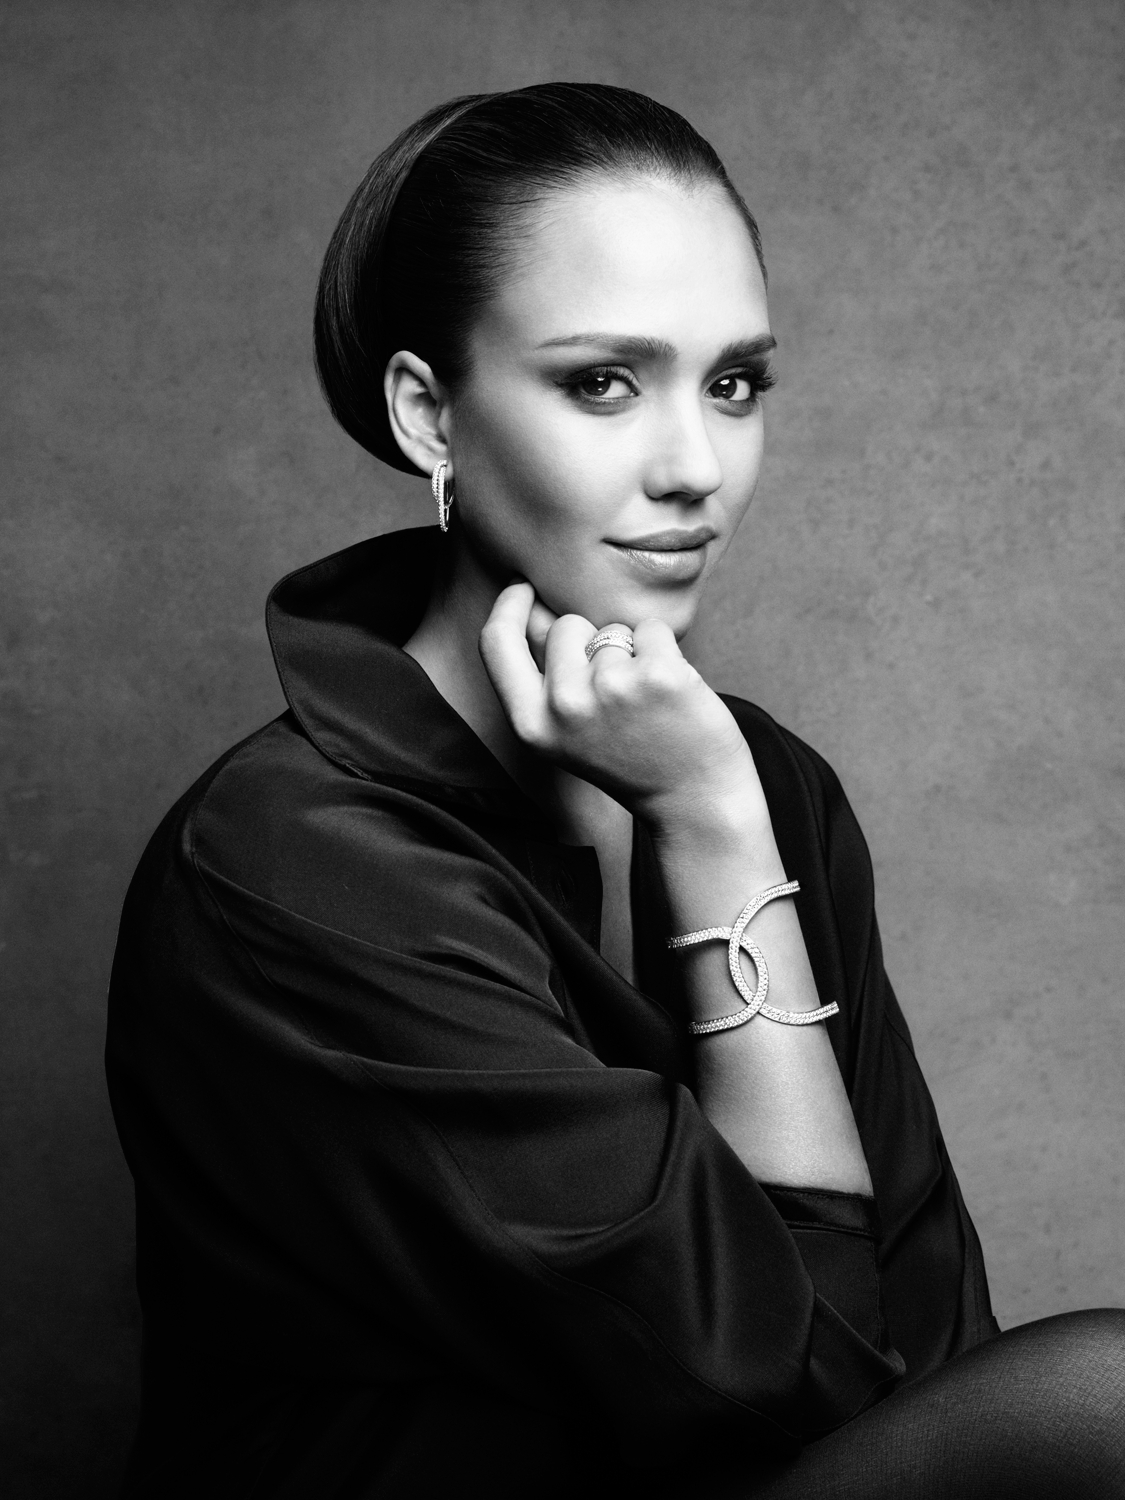 940458887_Jessica_Alba_Patrick_Demarchelier_Photoshoot_for_Piaget_2011_1_122_498lo.jpg